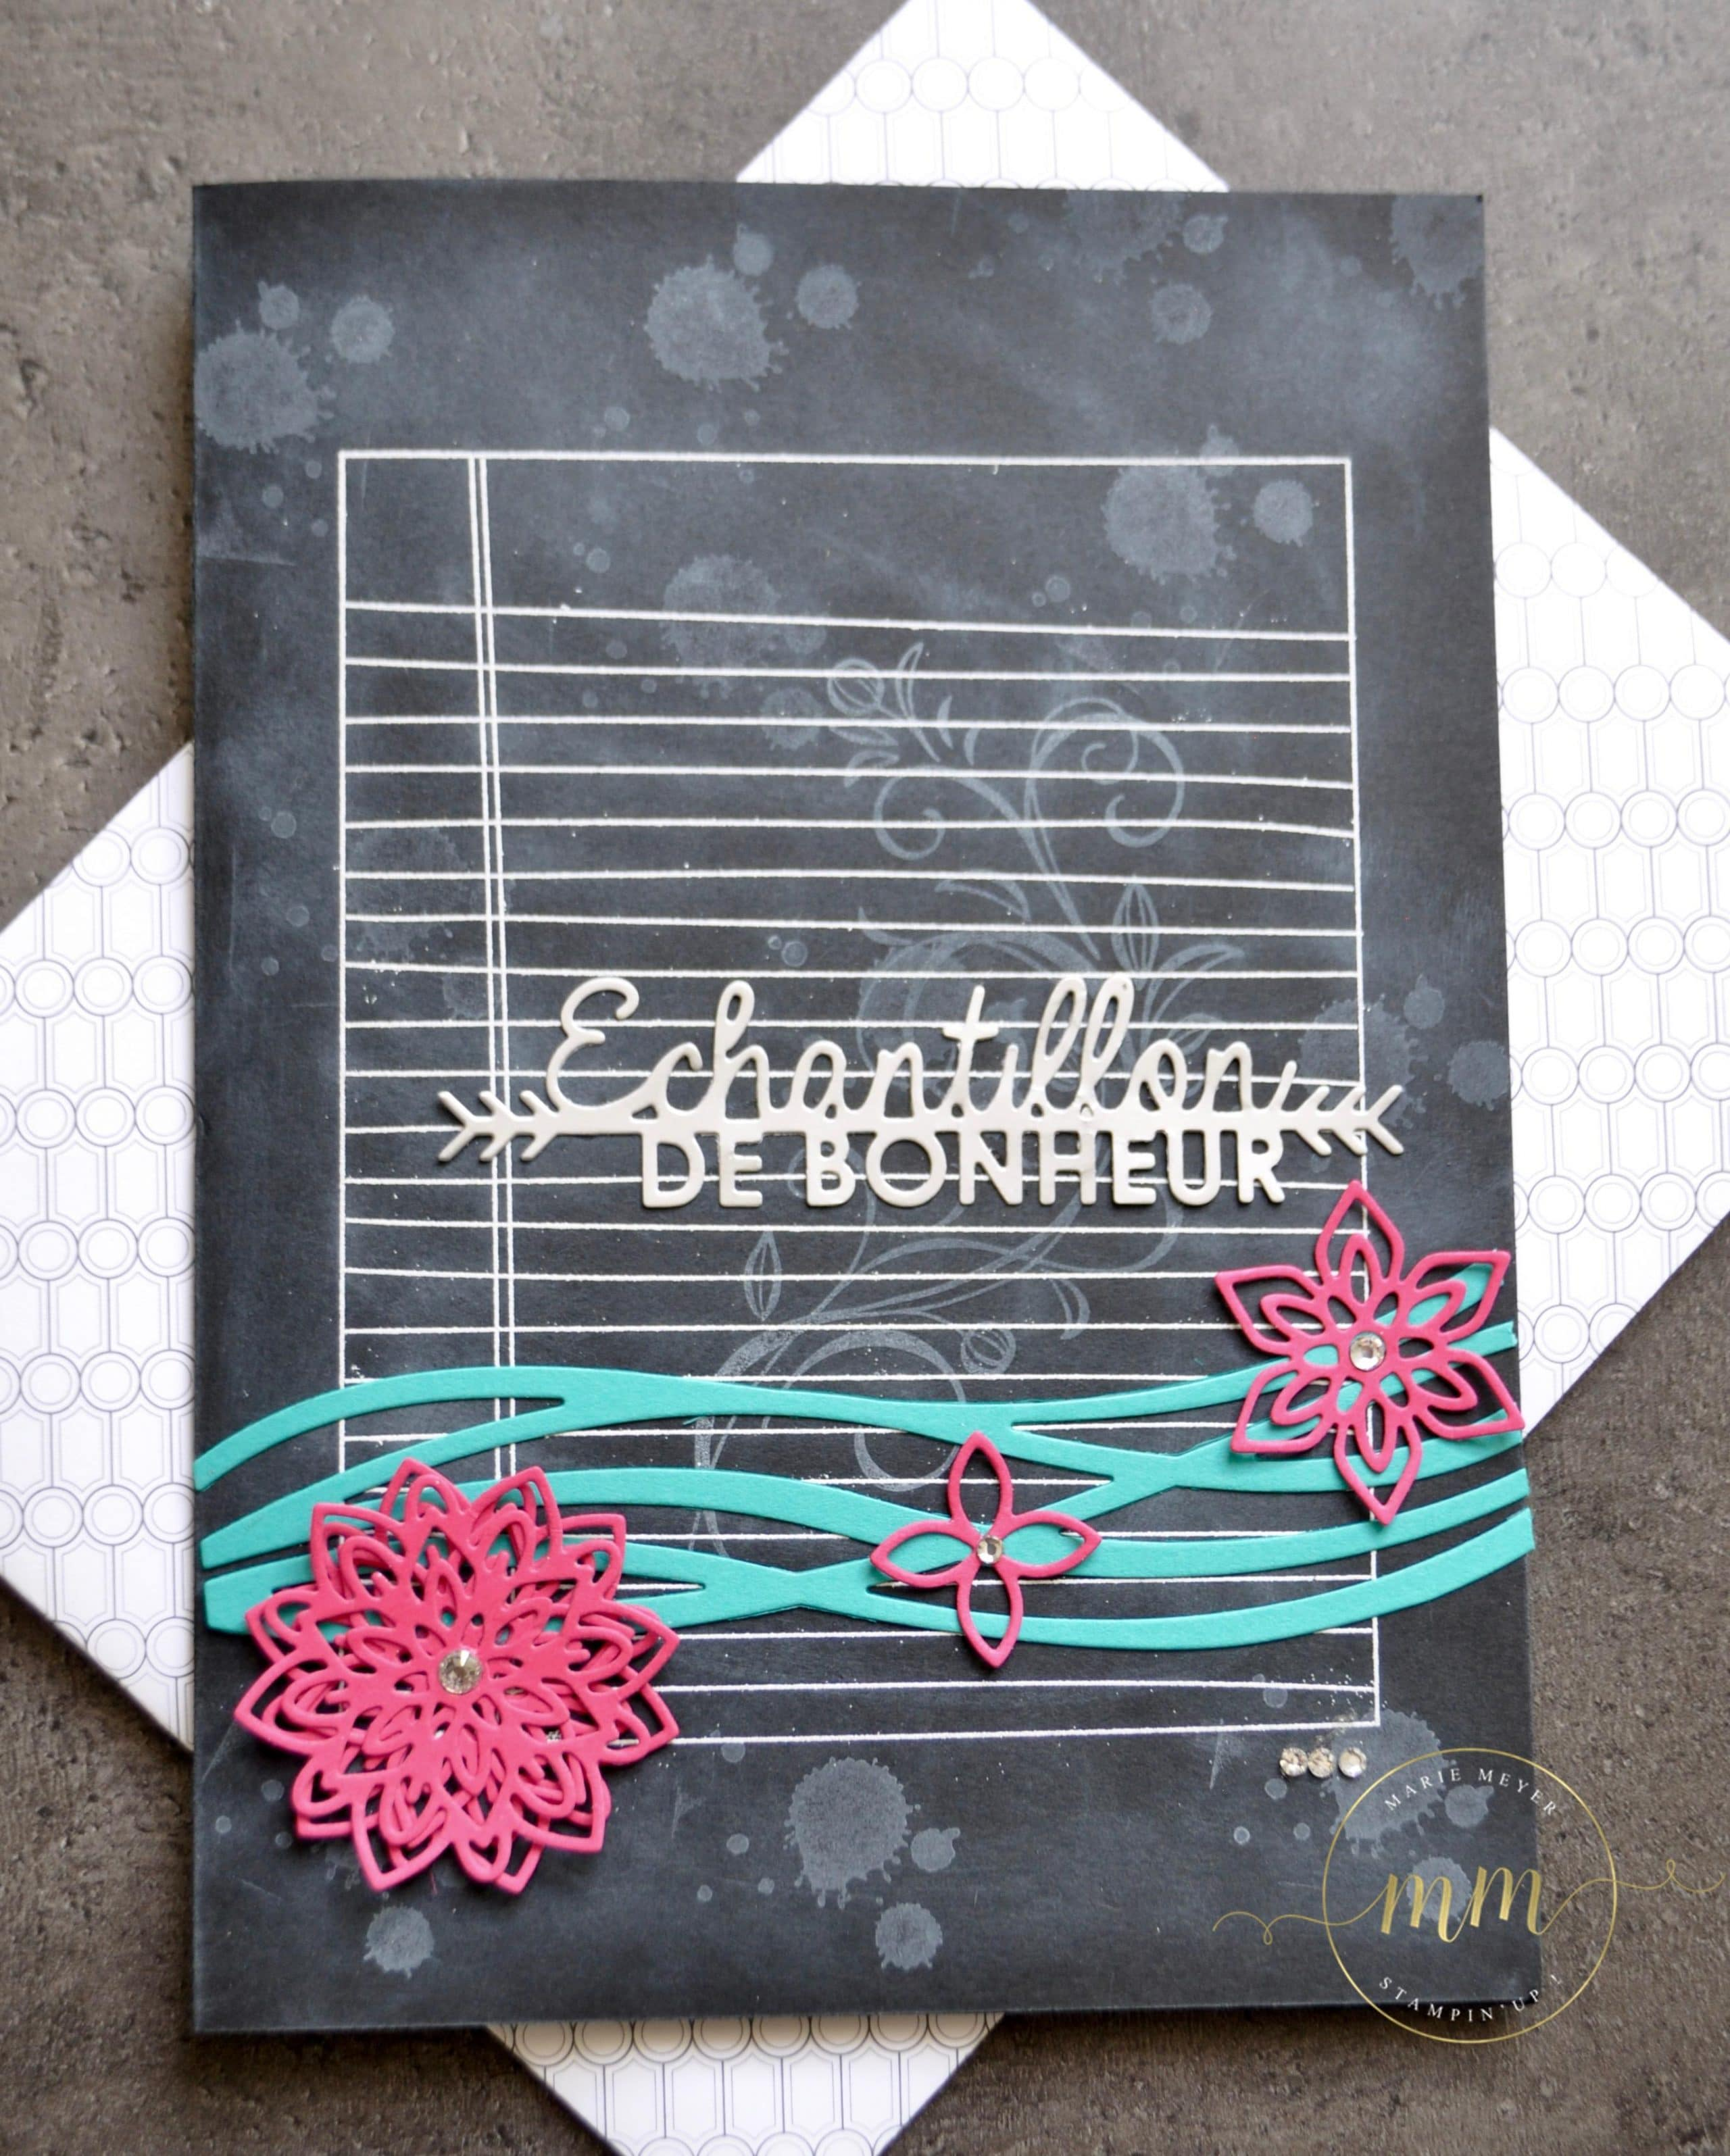 Carte de remerciement assistante maternelle tableau noir et Thinlits tourbillonnants par Marie Meyer Stampin up - http://ateliers-scrapbooking.fr/ - Swirly Scribbles Thinlits - Flourish Thinlits -Thinlits Wunderbar verwickelt - Thinlits Blütenpoesie